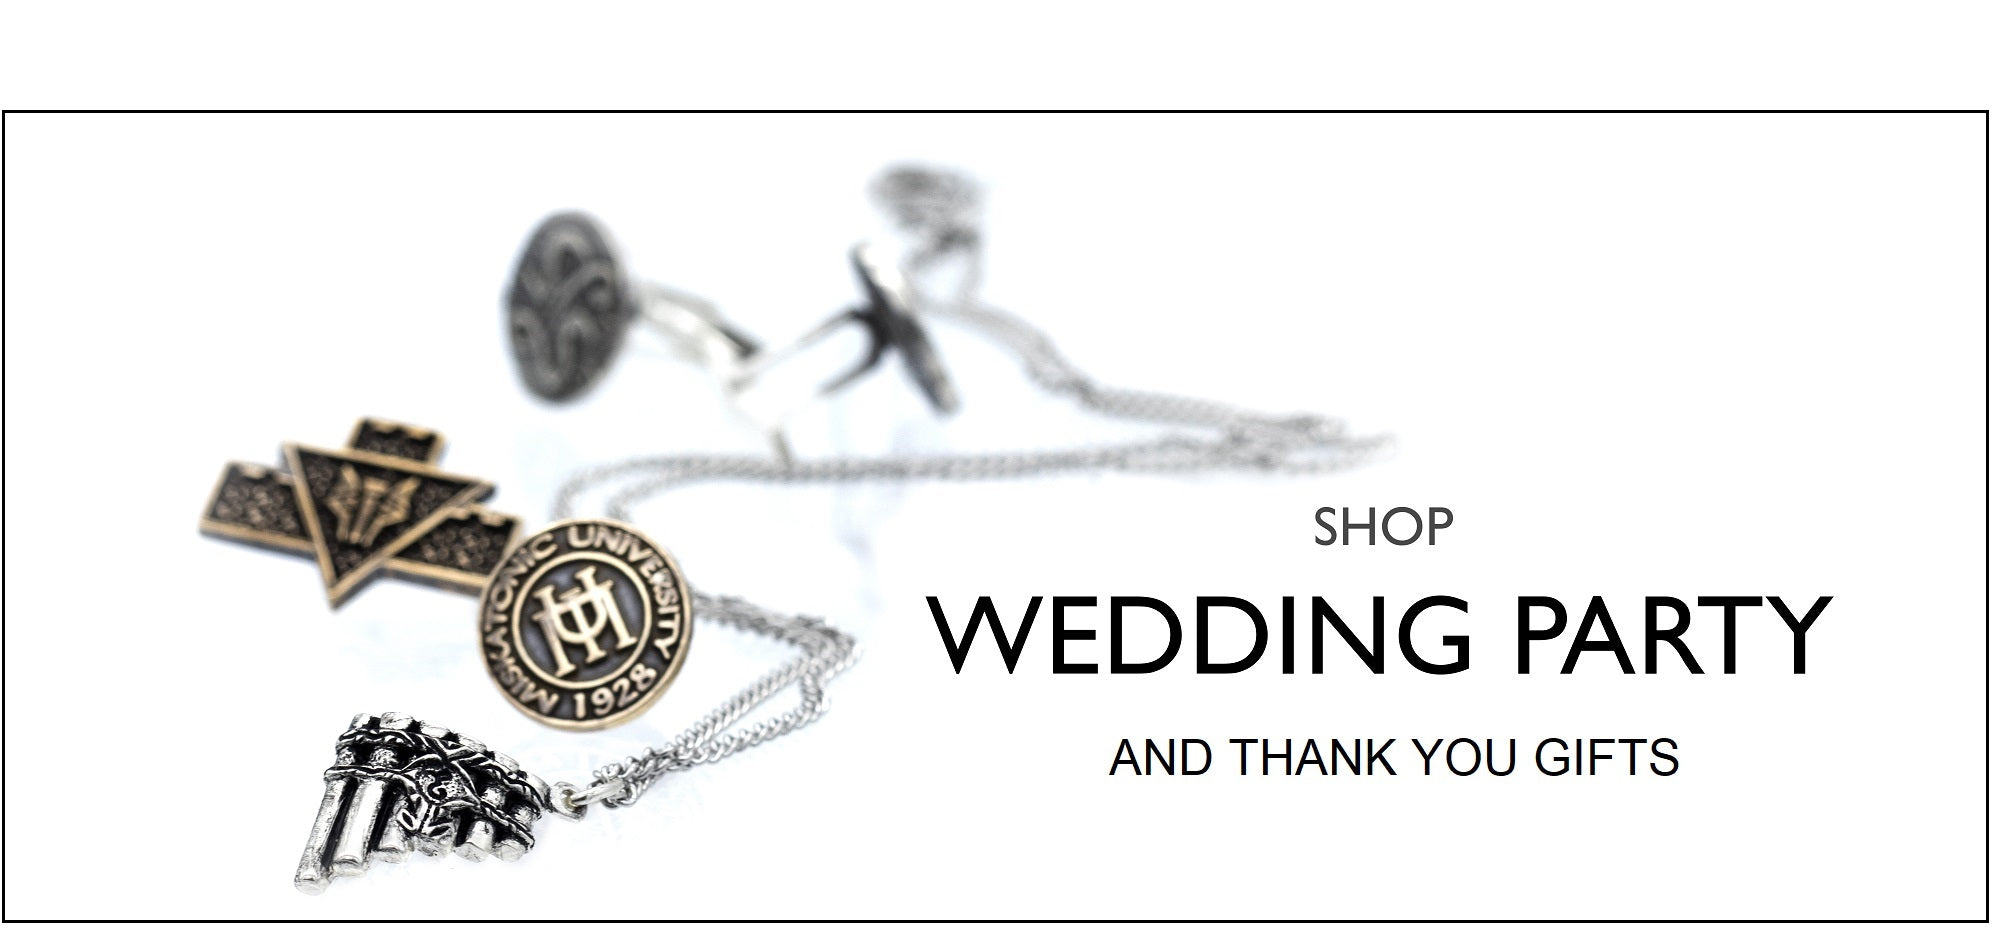 Buy gifts for your wedding party and thank you gifts